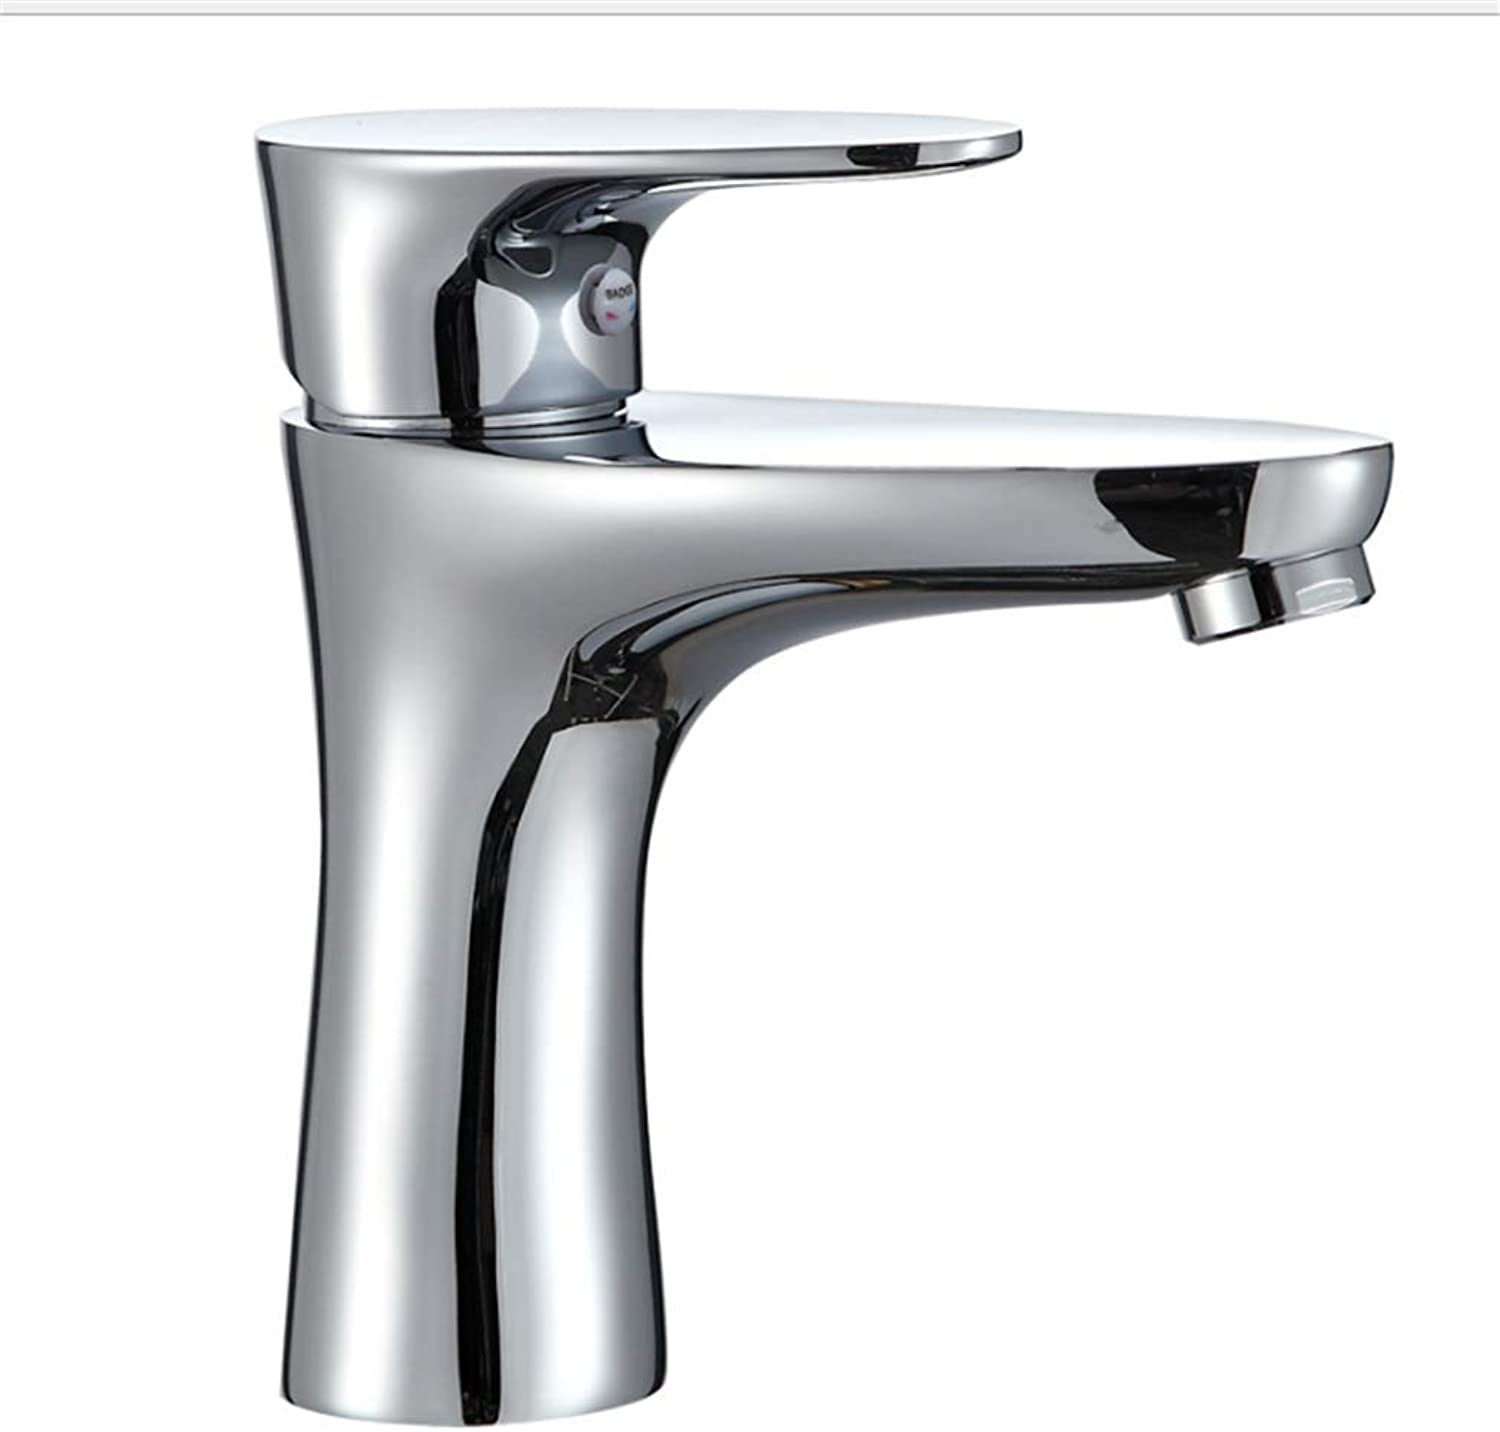 Counter Drinking Designer Archcopper Cold and Hot Basin Faucet Single Hole Mixing Faucet greenical Table Basin Faucet